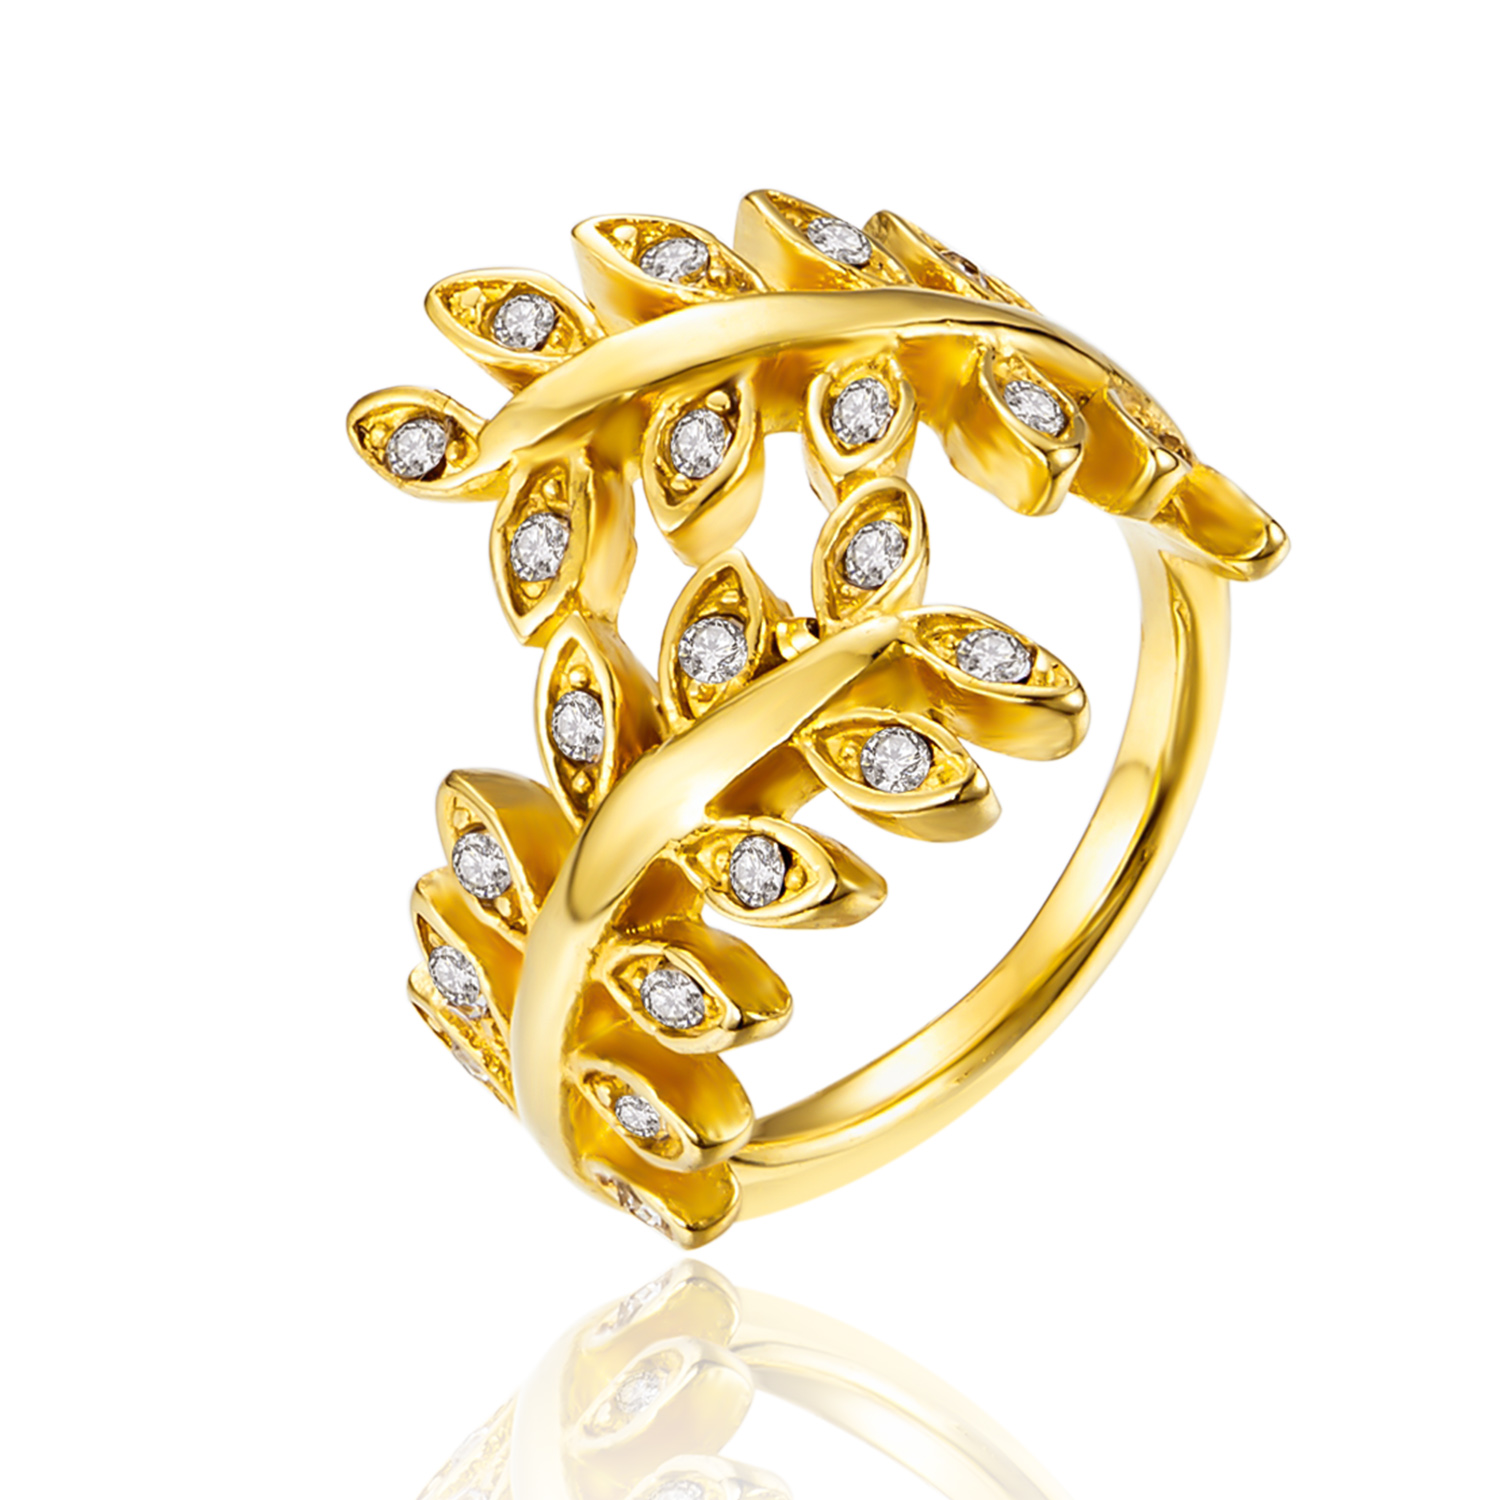 Rious Brand Cute Style Olive Branch Design Fashion Ring For Girls ...